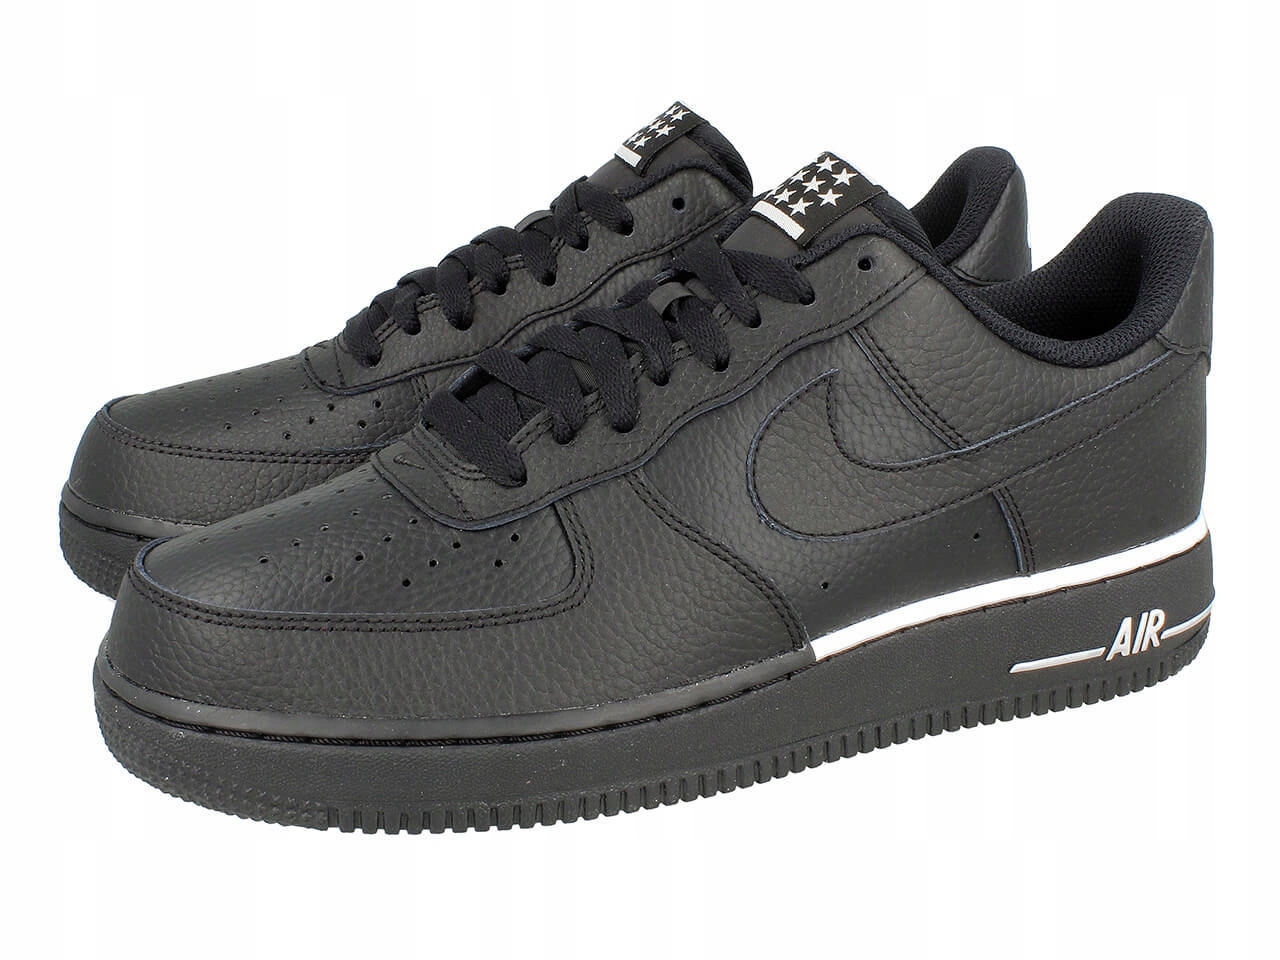 BUTY NIKE AIR FORCE 1 '07 AA4083 103 42 12